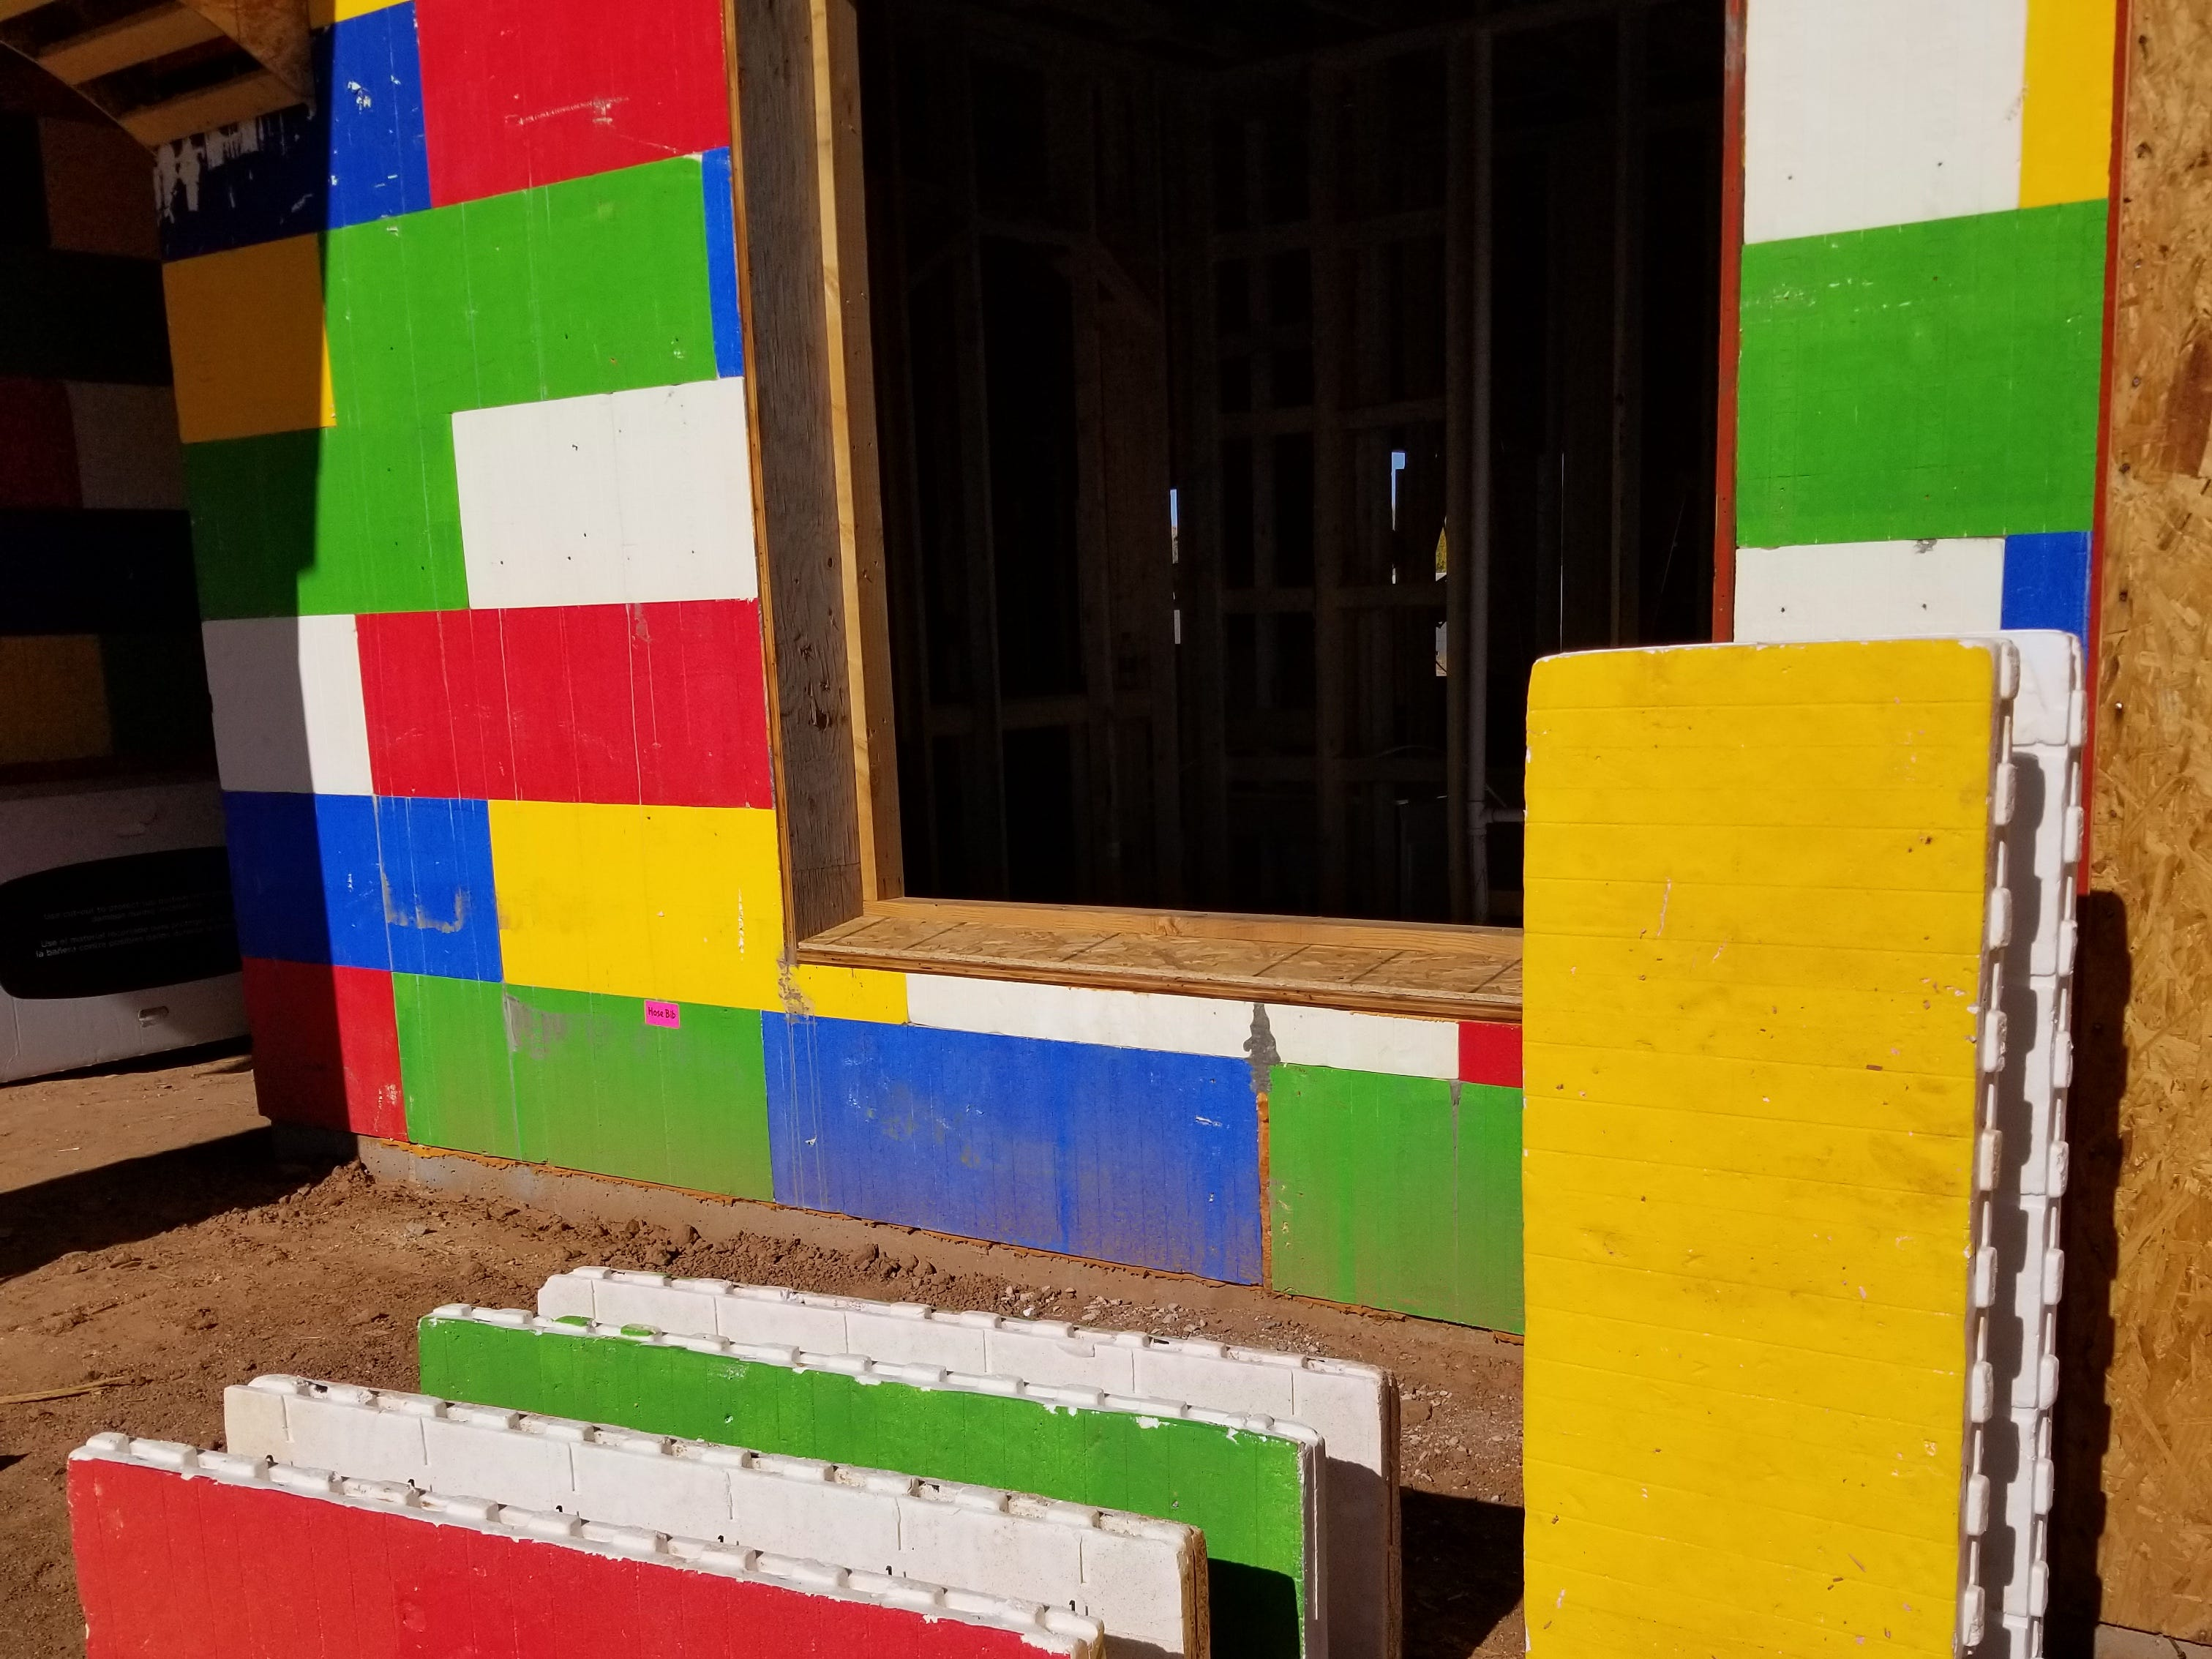 Demo insulating concrete forms in bright Lego-like colors are available for the curious to see up close when visiting the job site.